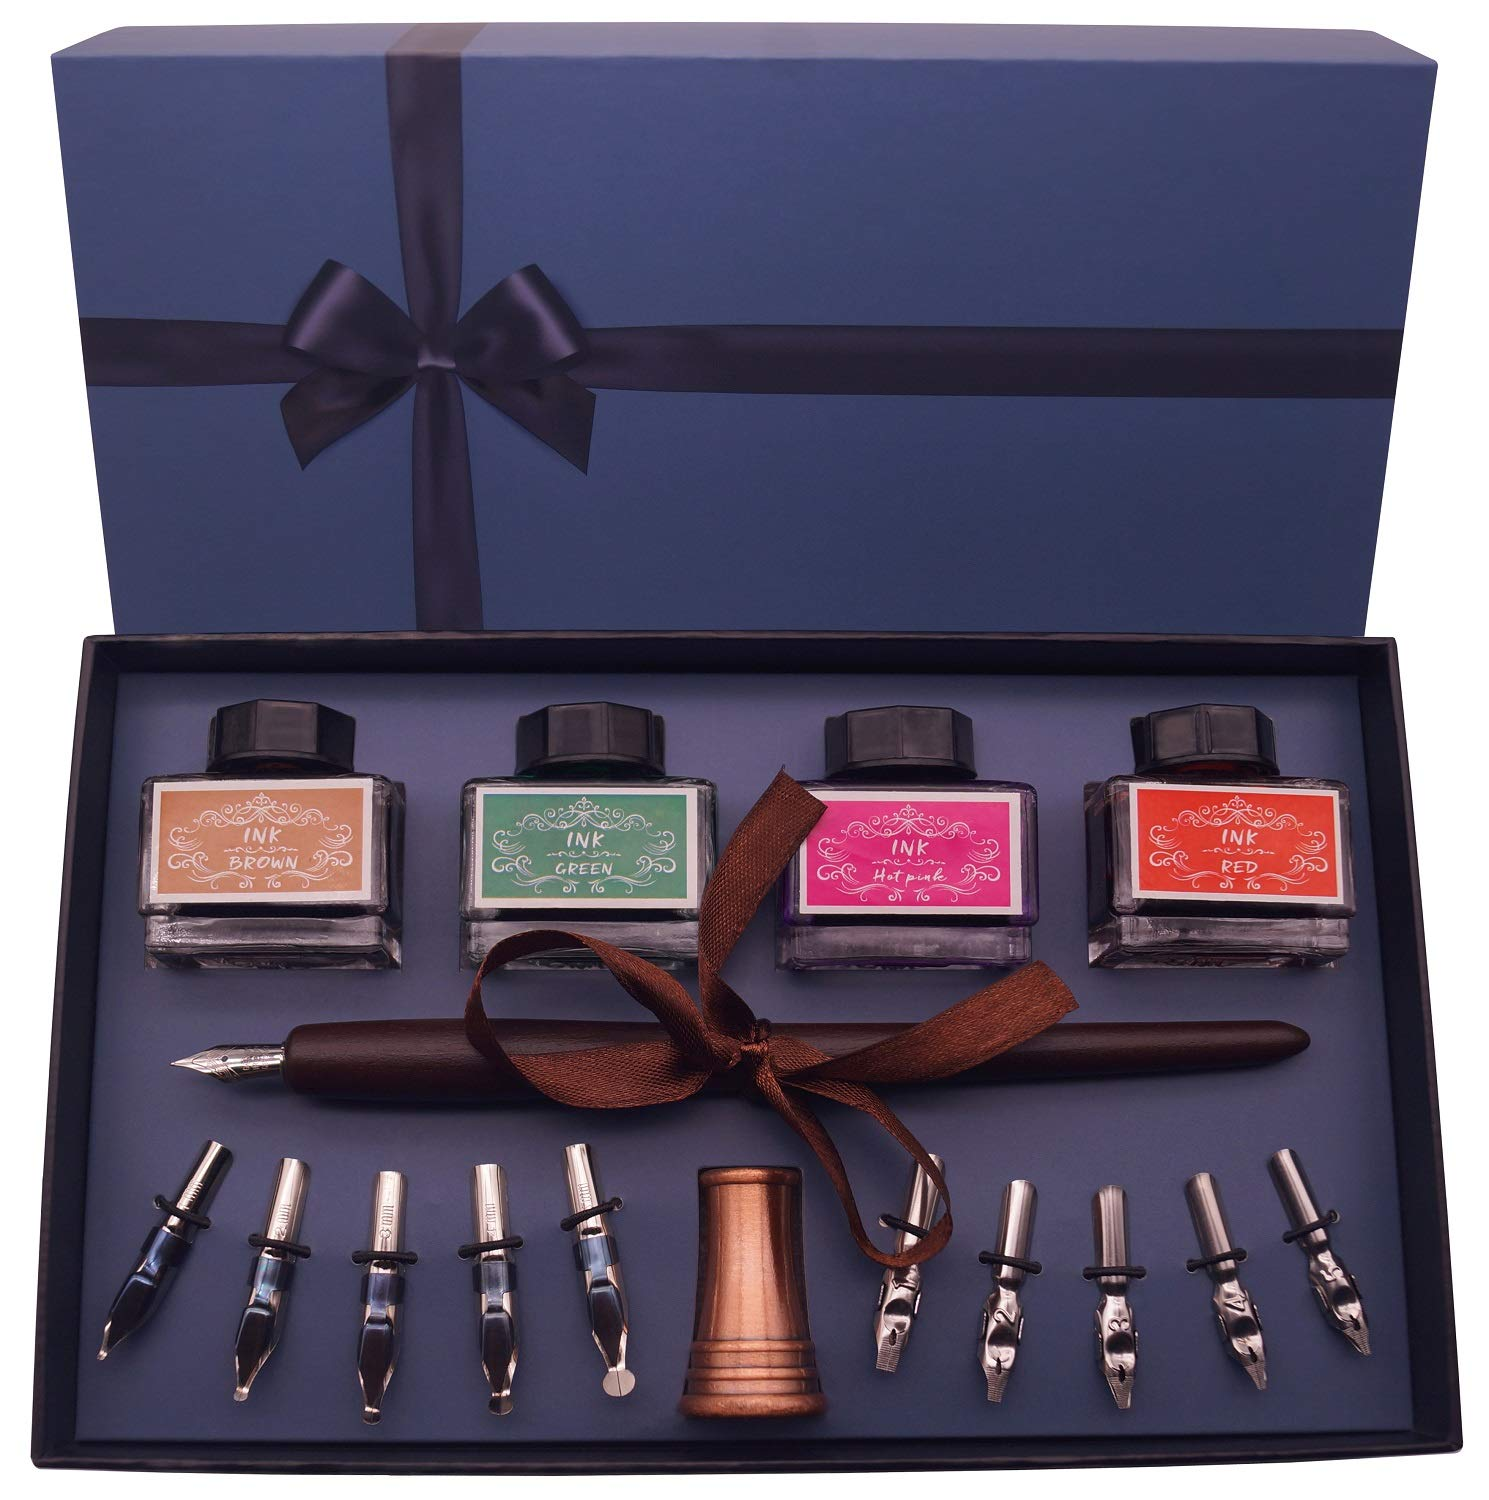 Plotube Calligraphy Pen Set - Includes Wooden Dip Pen, Antique Holder, 11 Nibs, 4 Ink Bottle by plotube